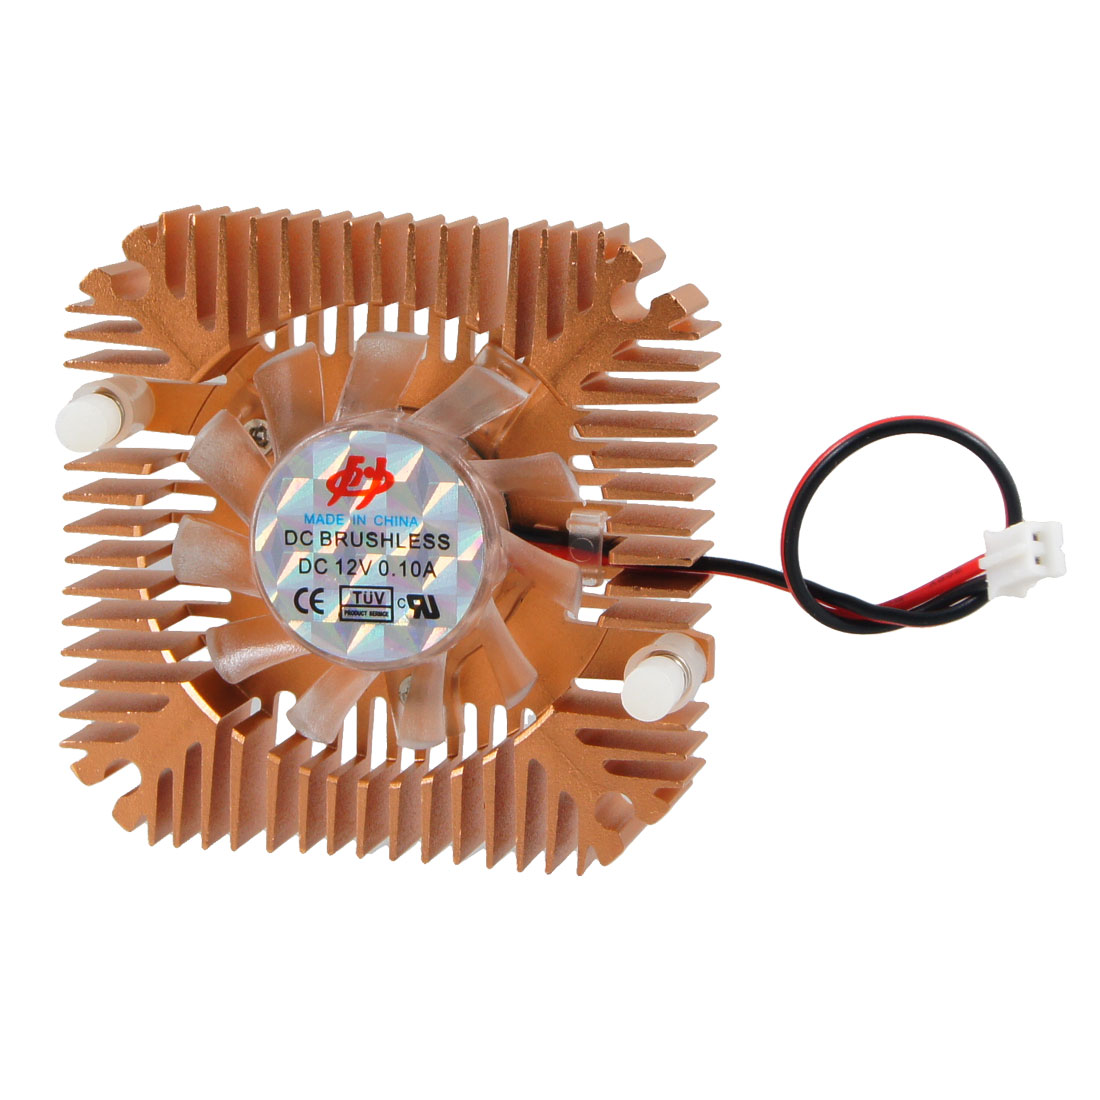 Copper Tone 2 Terminals Connector Square Shaped Cooling Fan for PC Laptop CPU